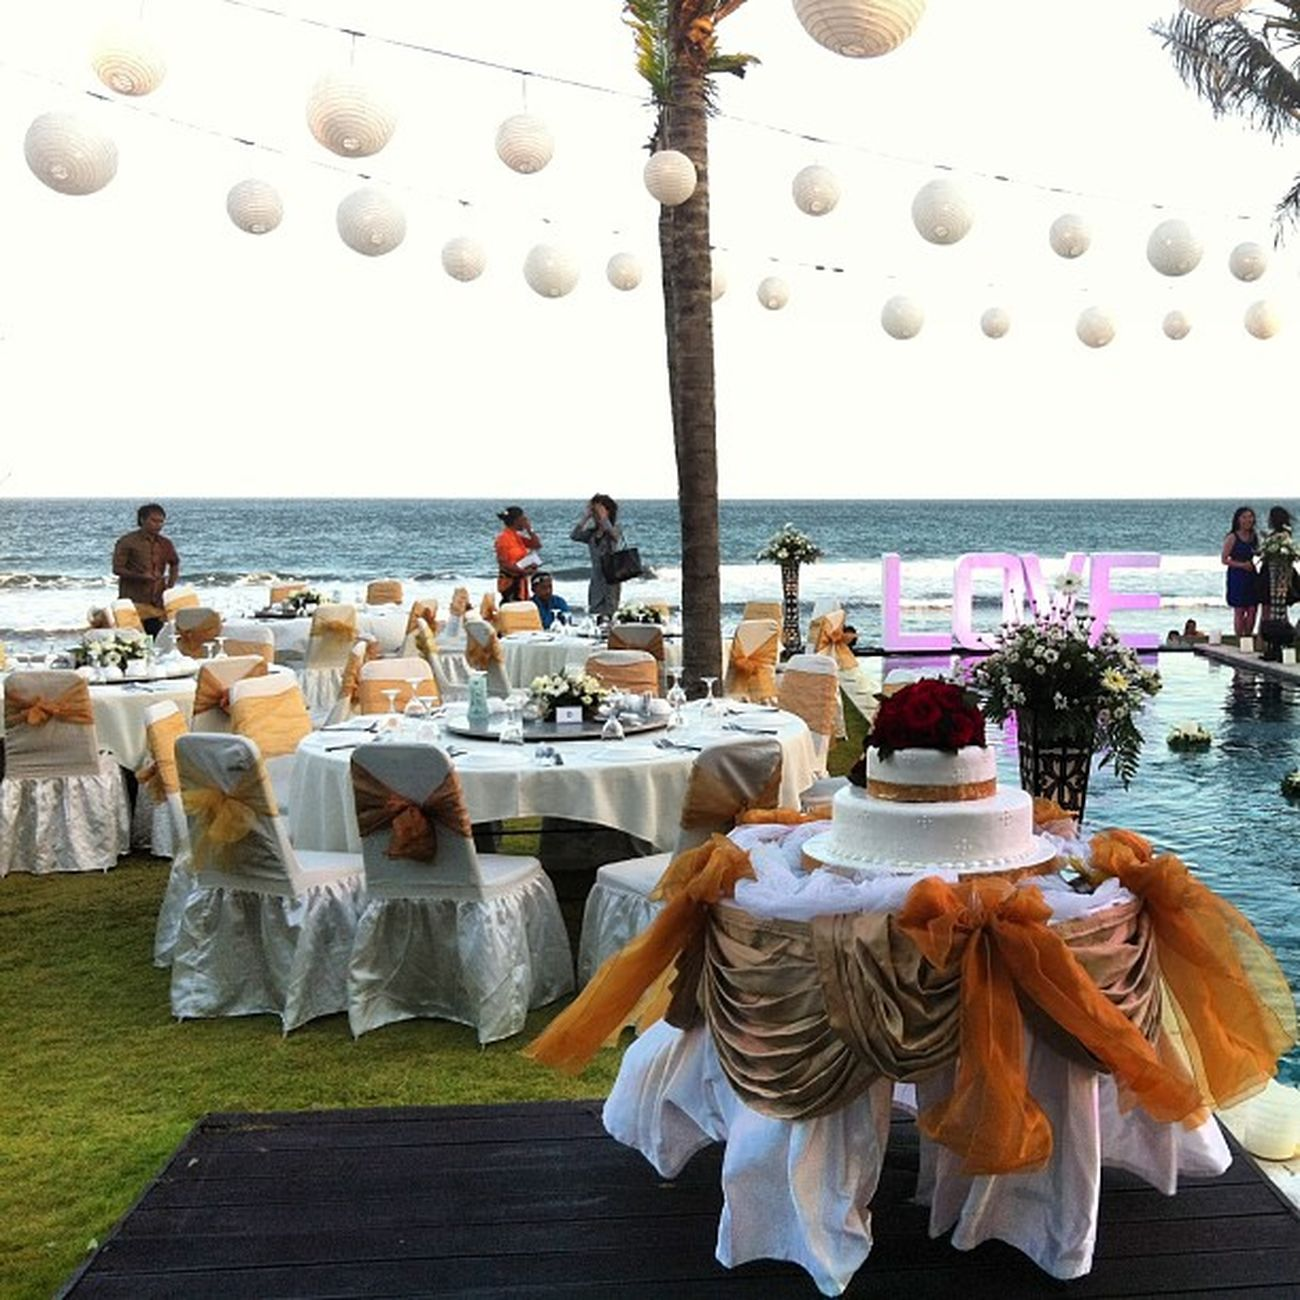 Happy Wedding Raka & Ella.. Dinner TableManner TableG Wedding Party Night Lampion Love beautiful Amazing beach Cool Brizzy